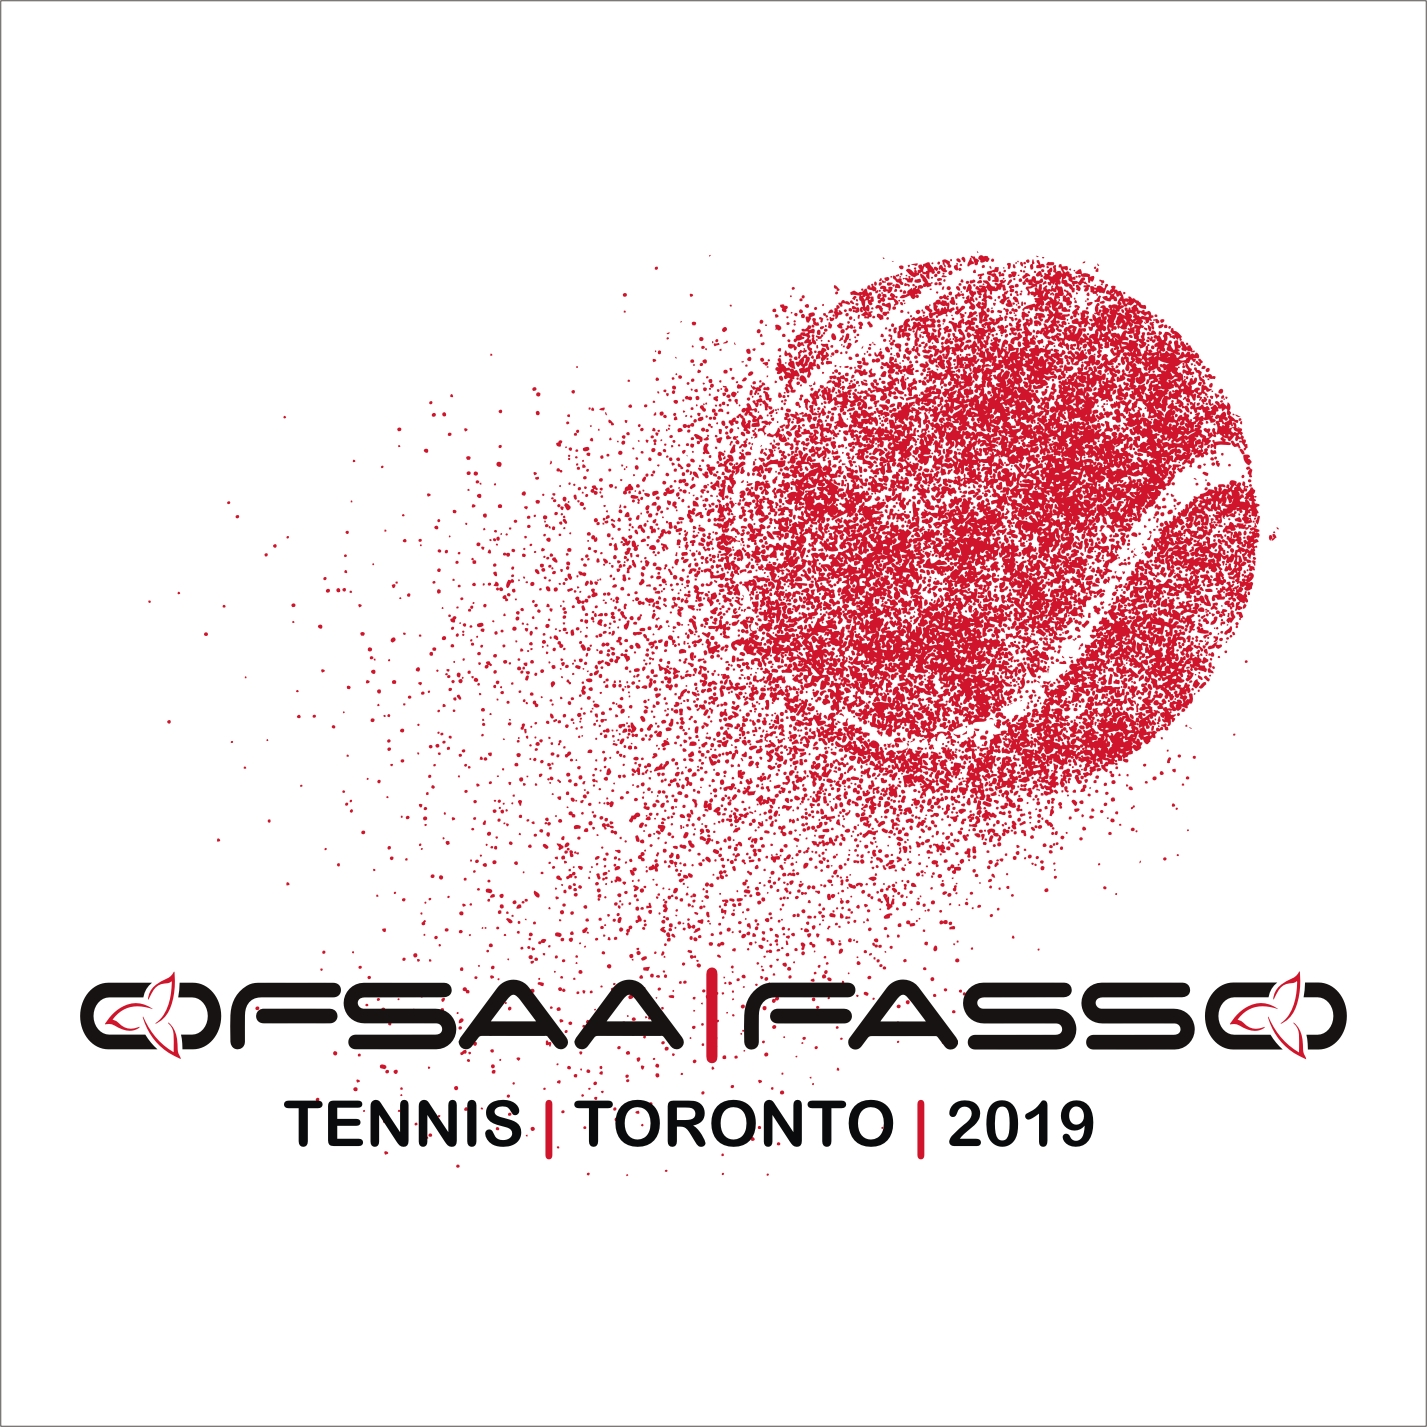 2019 Tennis logo white.jpg